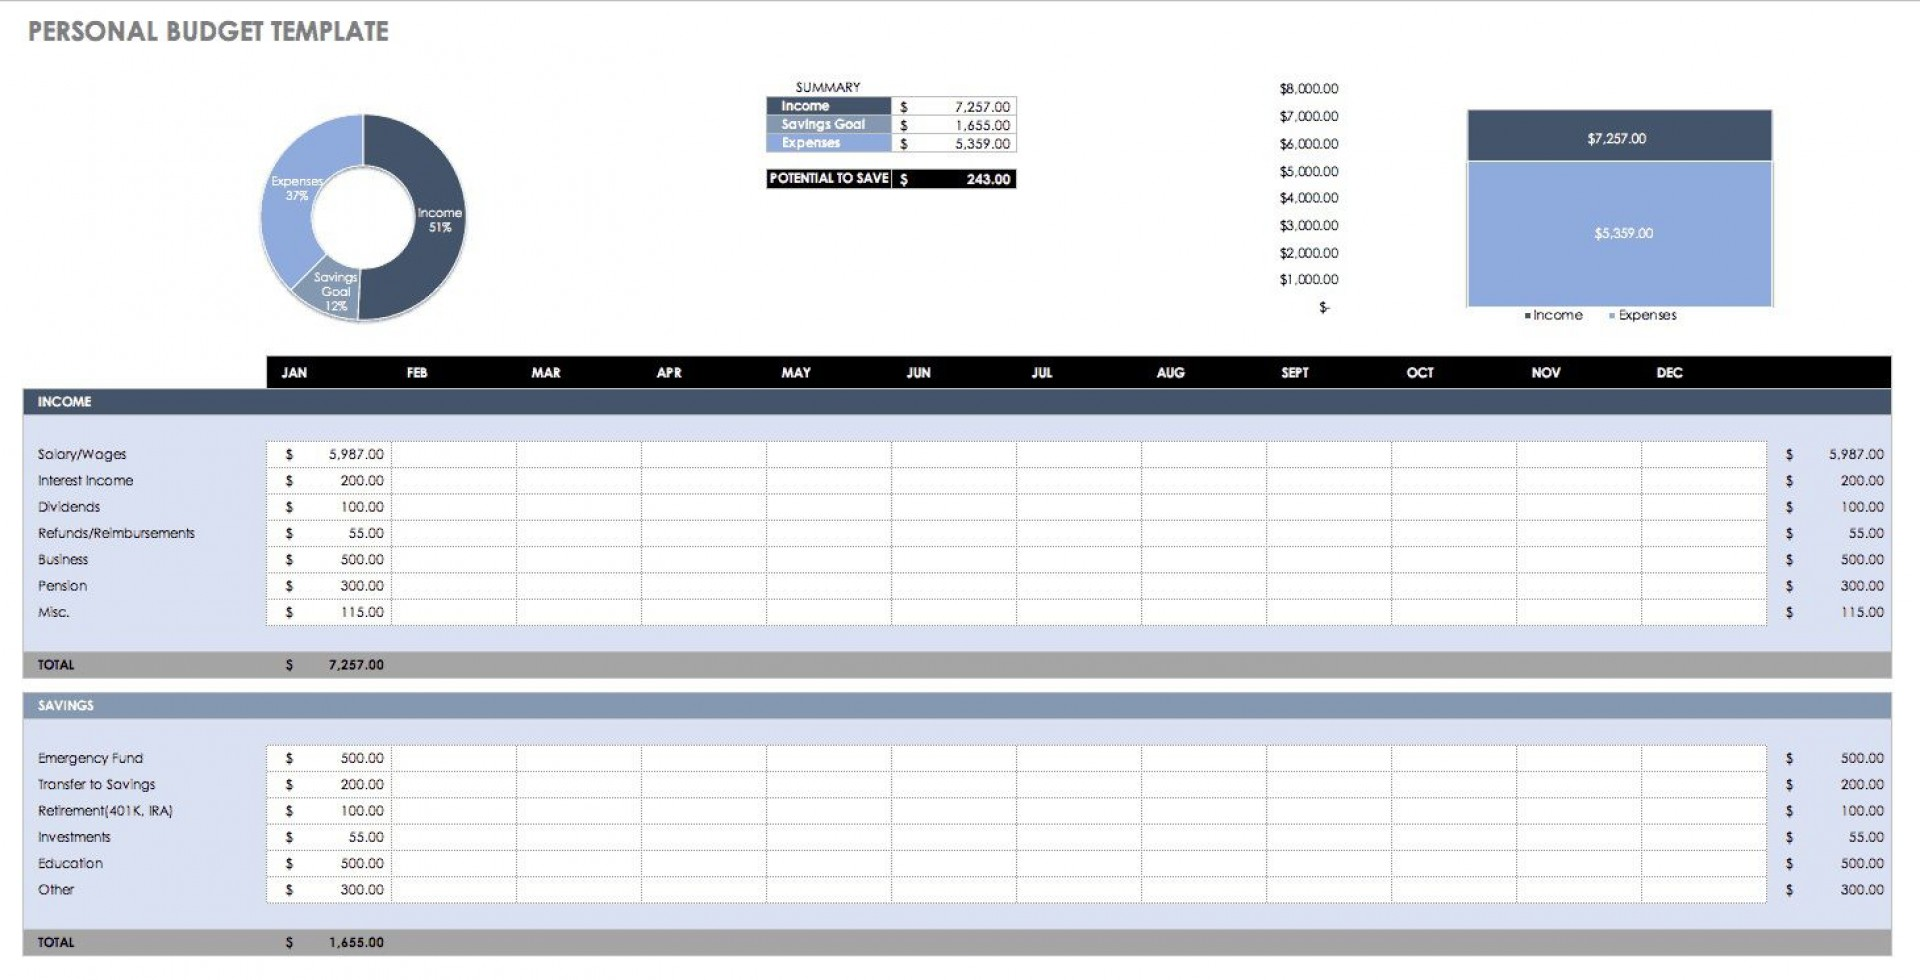 006 Outstanding Personal Budgeting Template Excel Image  Finance Free Expense Tracker Spreadsheet1920